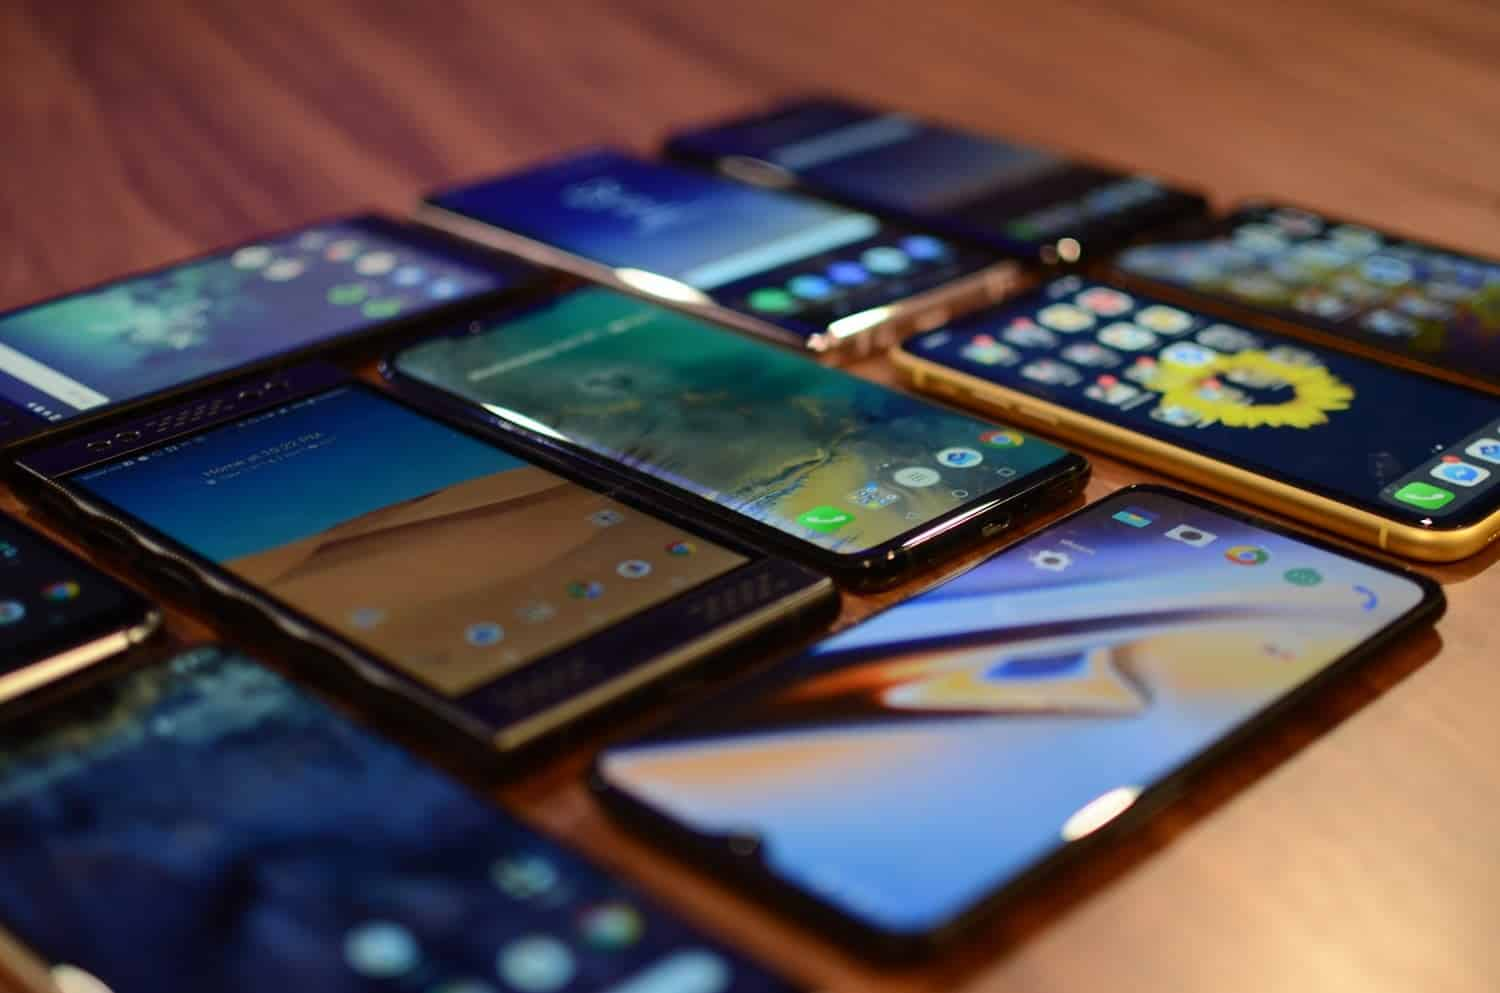 "smartphones ""width ="" 1500 ""height ="" 993 ""srcset ="" https://www.leak.pt/wp-content/uploads/2019/03/smartphones.jpg 1500w, https://www.leak.pt/ wp-content / uploads / 2019/03 / smartphones-95x63.jpg 95w, https://www.leak.pt/wp-content/uploads/2019/03/smartphones-350x232.jpg 350w, https: // www. leak.pt/wp-content/uploads/2019/03/smartphones-768x508.jpg 768w, https://www.leak.pt/wp-content/uploads/2019/03/smartphones-1200x794.jpg 1200w, https: //www.leak.pt/wp-content/uploads/2019/03/smartphones-1068x707.jpg 1068w ""sizes ="" (max-width: 1500px) 100vw, 1500px ""/></p> <p>There are several interesting features in iOS 13! With many more on the way to iOS 14</p> <p>One of them is 'Sign in with Apple', which guarantees even more secure authentication. Subsequently, we also have the automatic Dark Mode (which already exists … more or less …), optimized battery charging (Use of Artificial Intelligence to extend battery life), full page screenshot, Find My Device offline, a clone to AirDrop that is not limited to certain manufacturers, etc …</p> <p>Not to mention the situation I mentioned above, the timely software updates. I still find it a shame the lack of support from some manufacturers. When is an OS independent of brand input?</p> <p>In short, it is undoubtedly a list of features that would look good on any Android device.</p><div class='code-block code-block-6' style='margin: 8px auto; text-align: center; display: block; clear: both;'> <div class='amazon-auto-links'><div class="